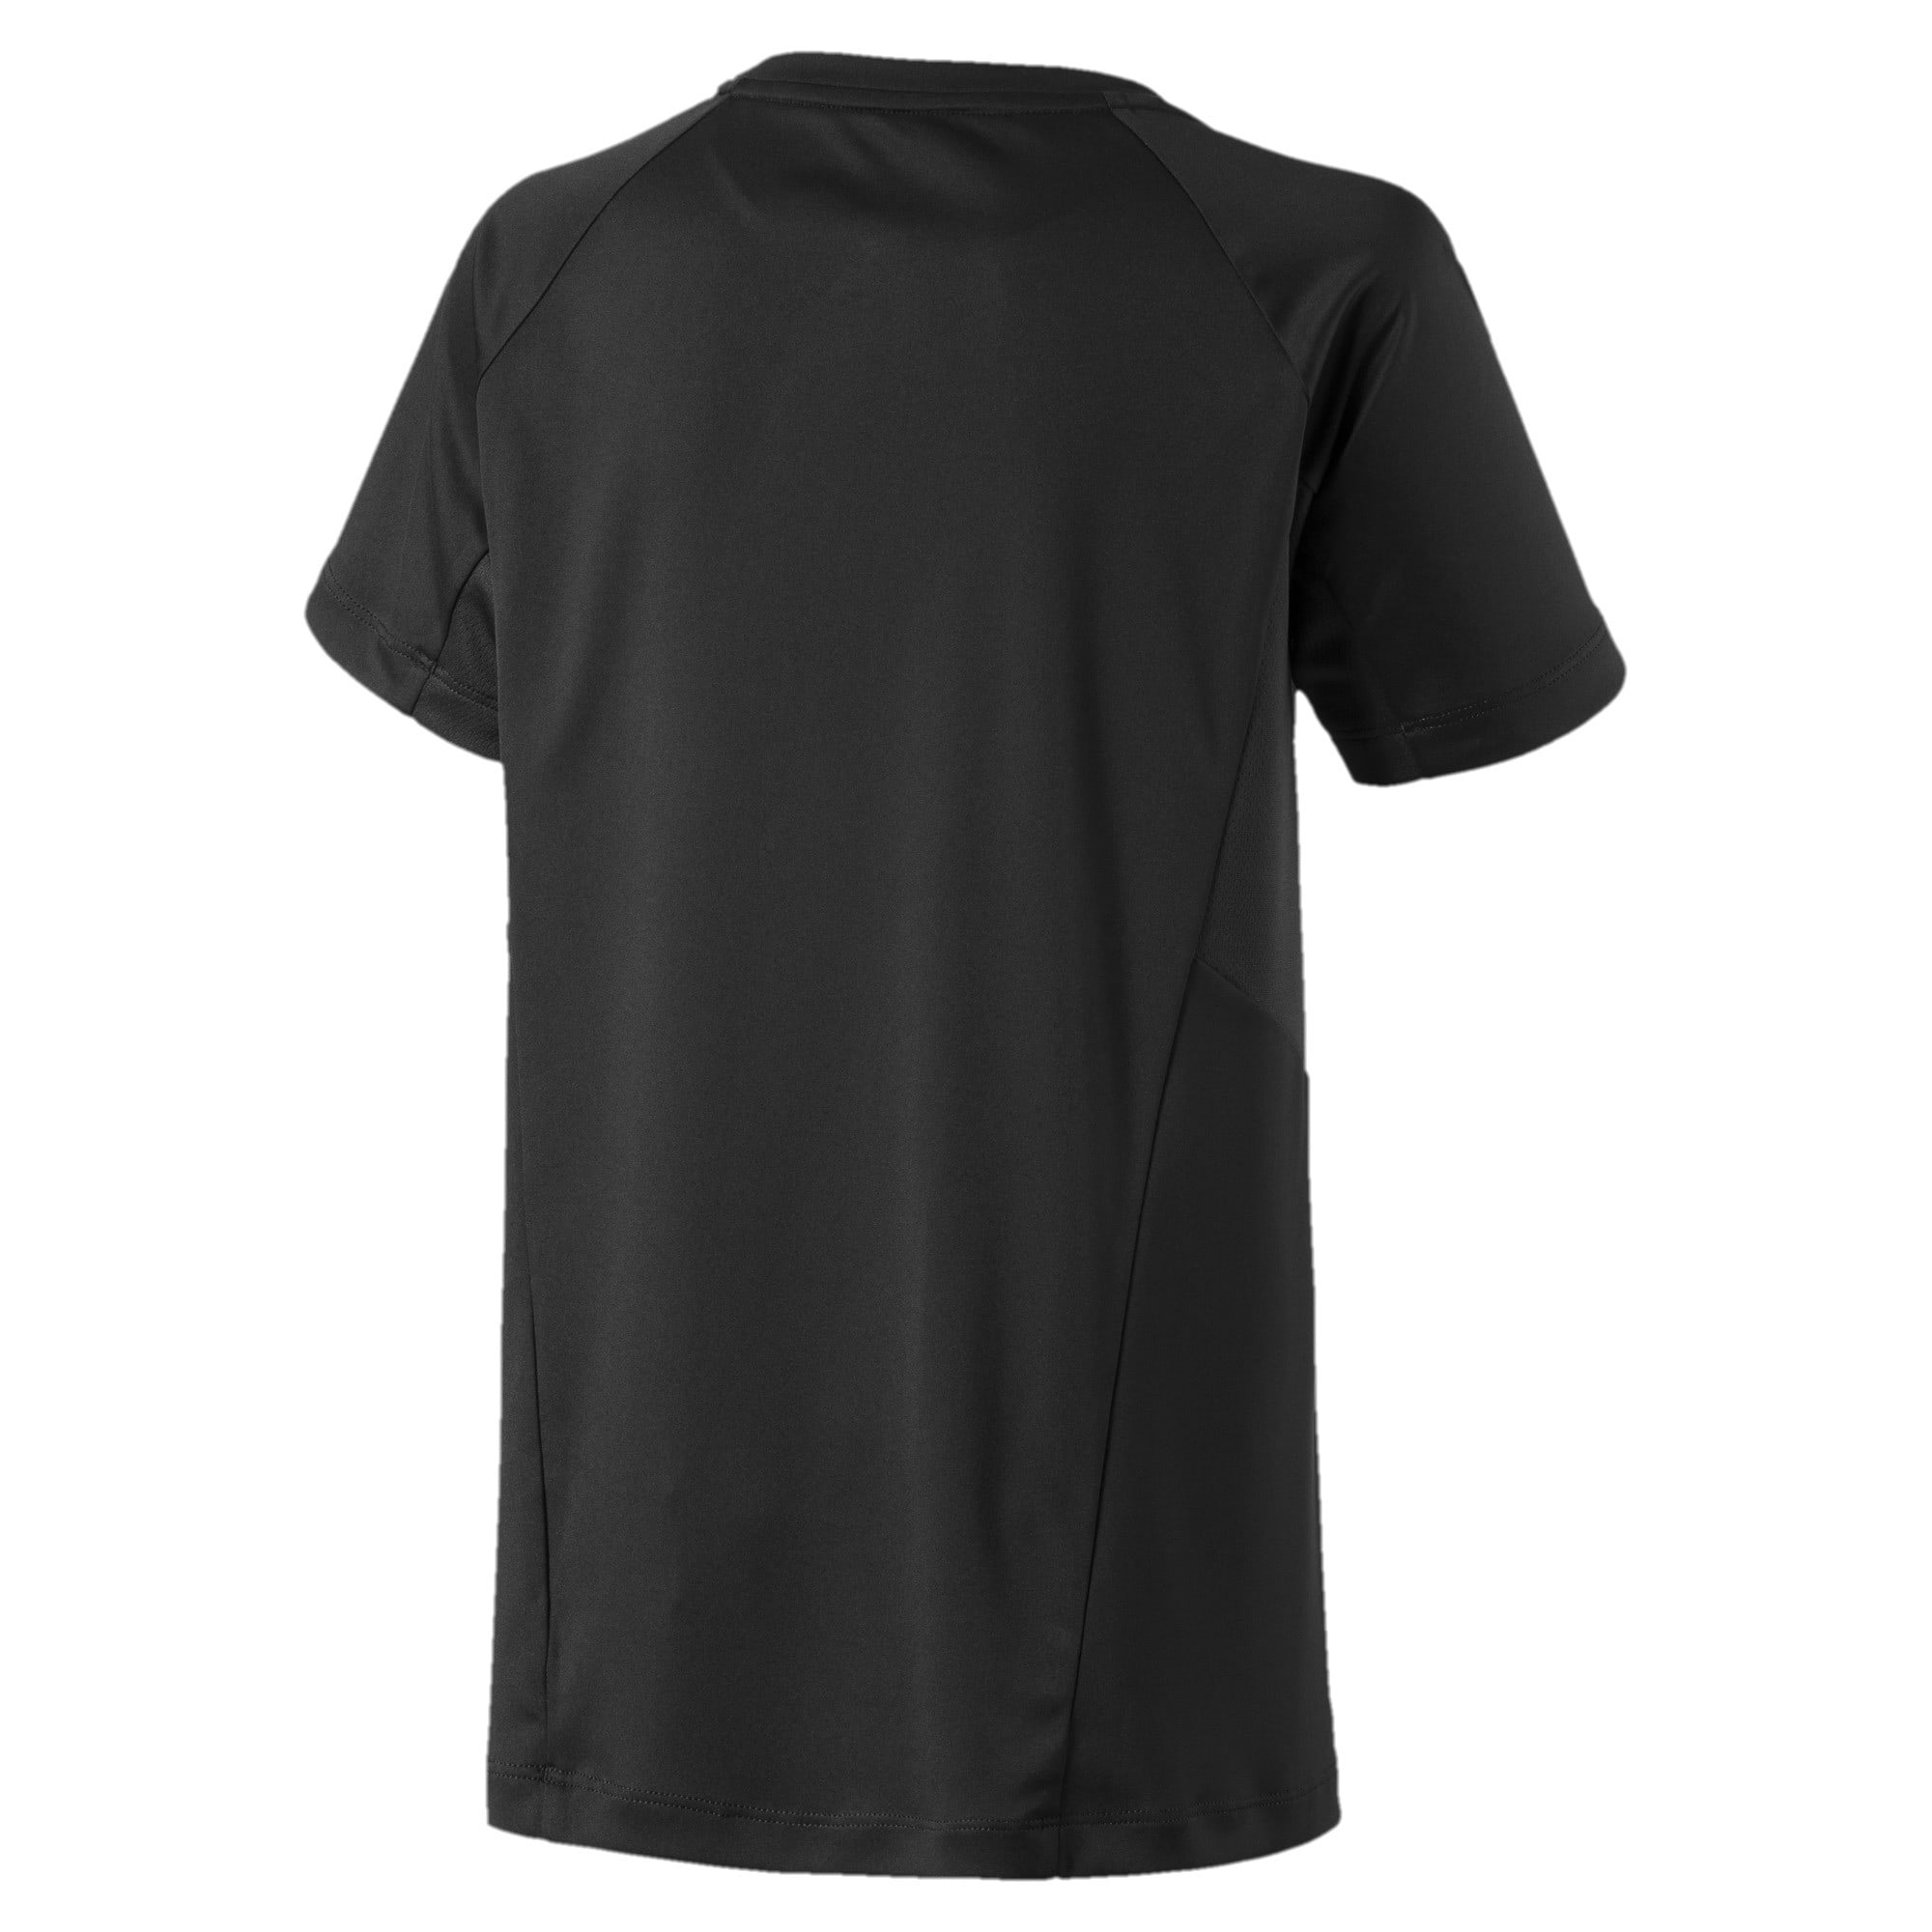 Thumbnail 2 of Active Sports Short Sleeve Boys' Tee, Puma Black, medium